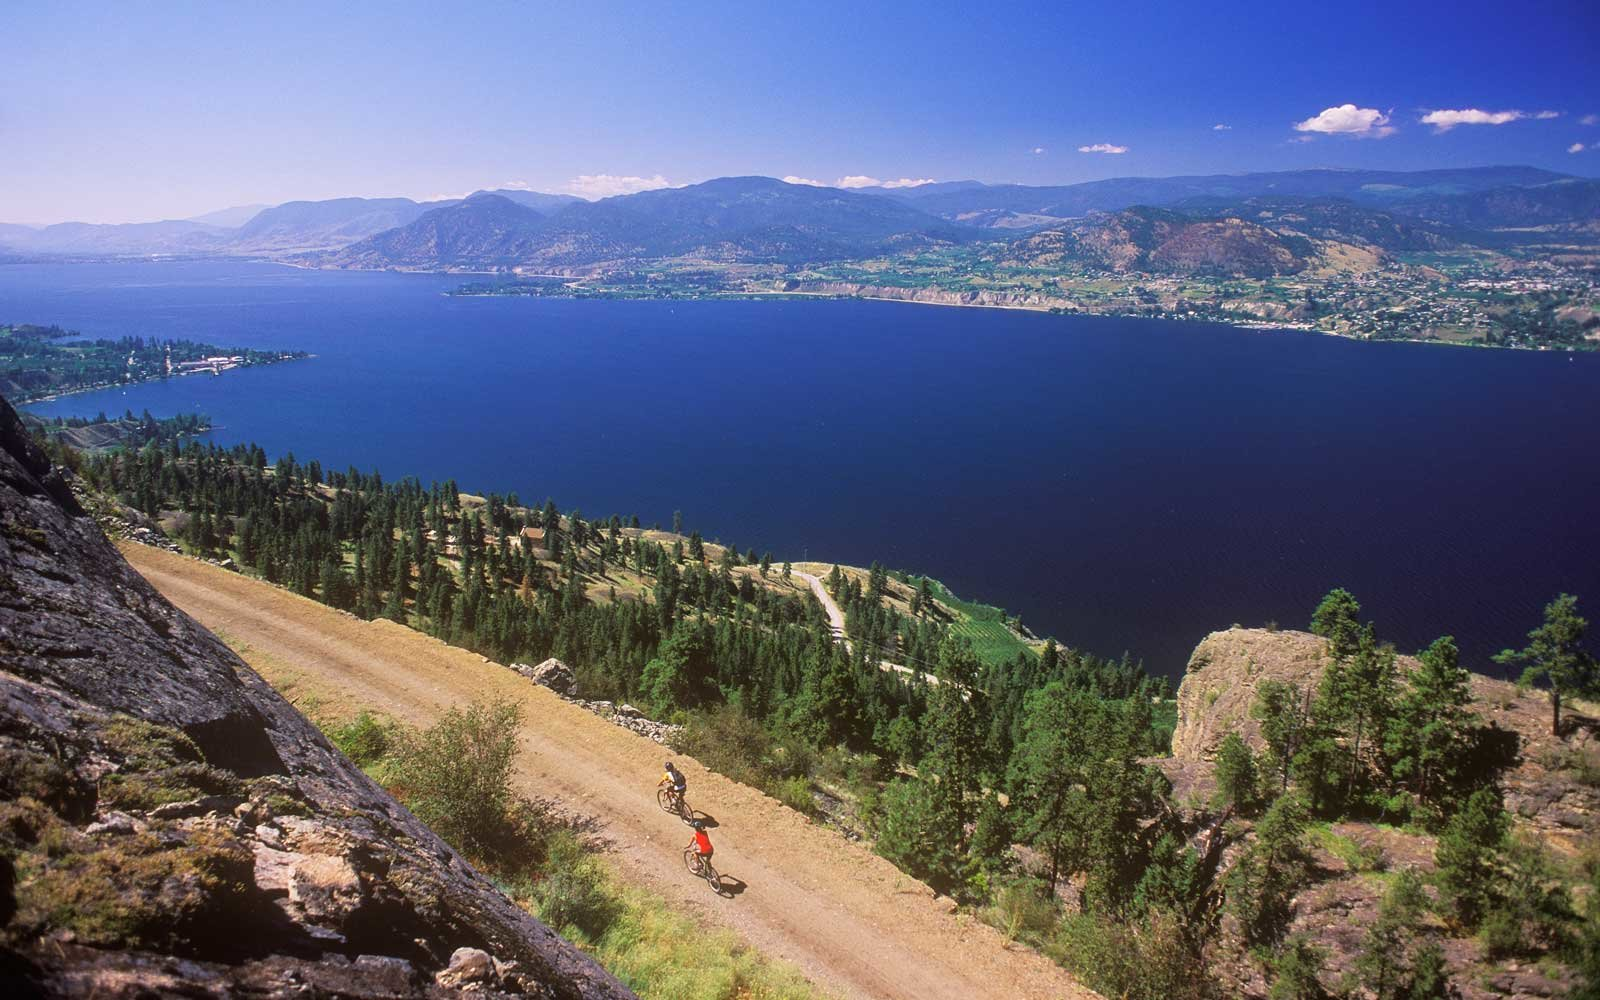 Cyclist on the Trans-Canada Trail, Penticton, British Columbia, Canada.